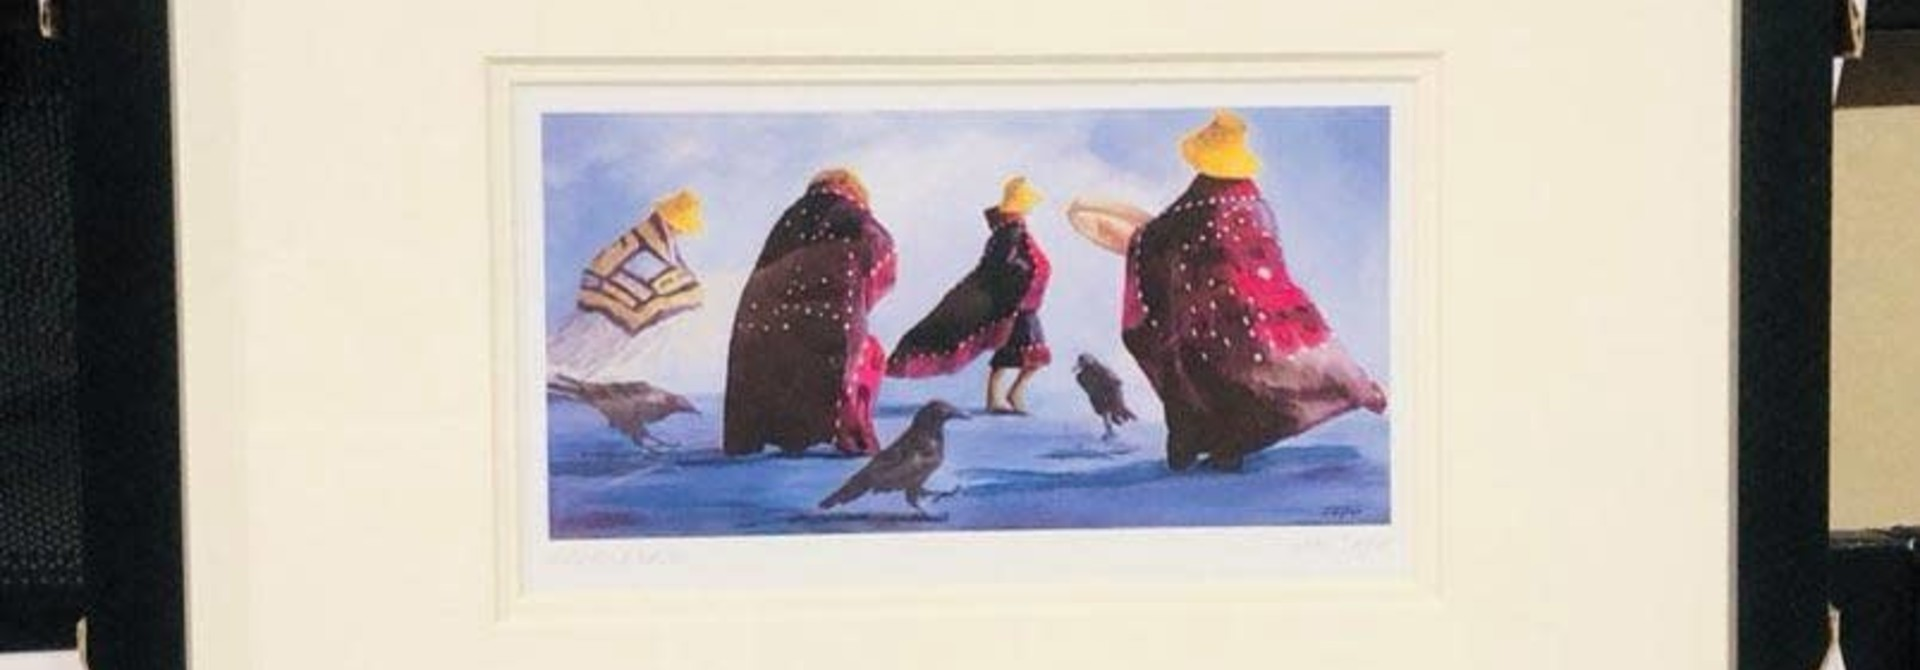 Framed and matted art card - including Raven by Jean Taylor